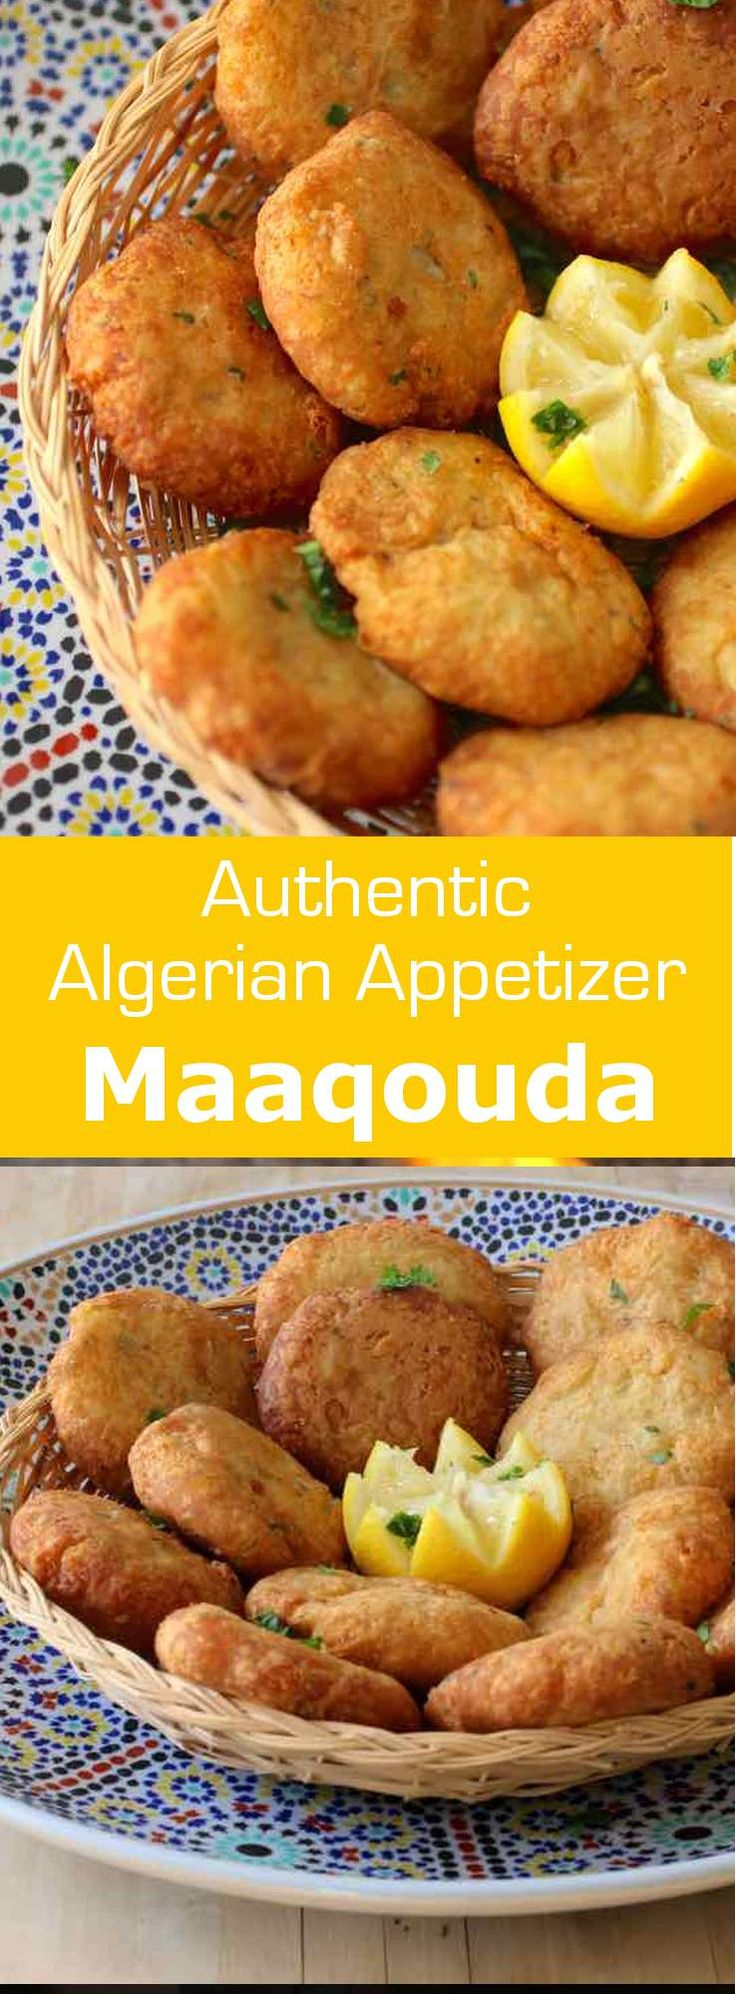 Maaqouda is a potato fritter recipe that is popular throughout North Africa. It…